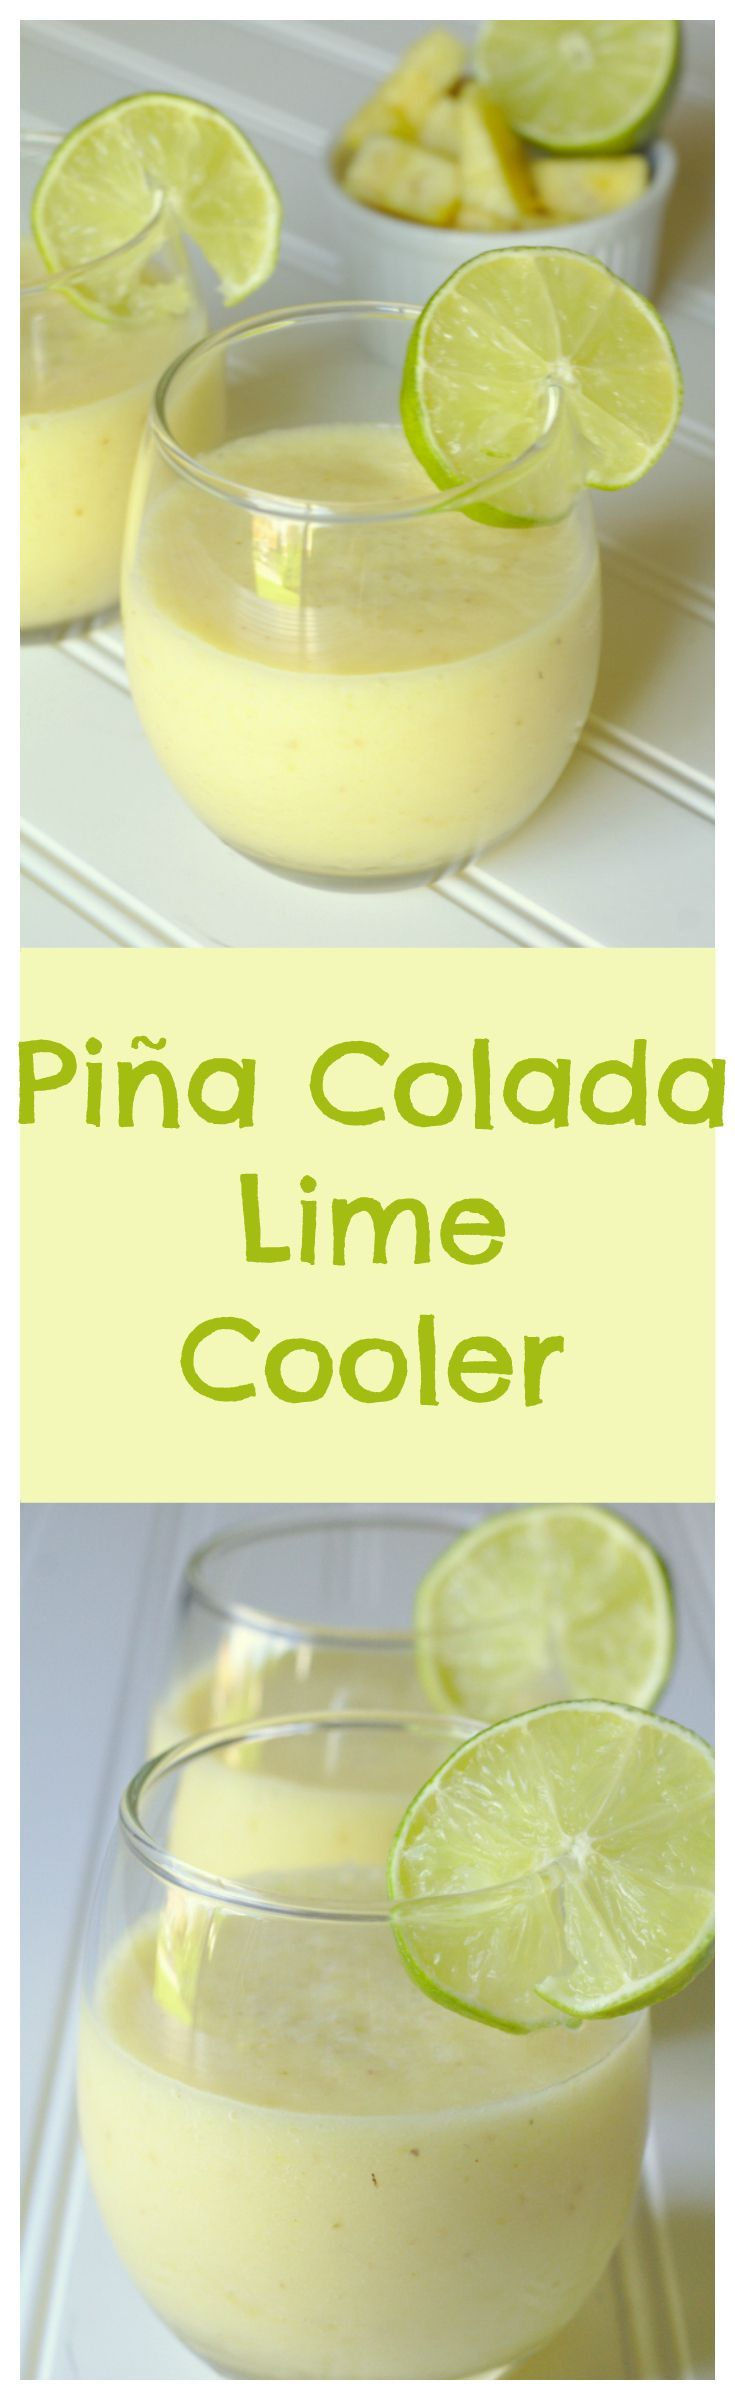 Piña Colada Lime Cooler – A delicious and refreshing summer drink filled with fresh pineapple, lime juice, coconut, and ice! #rum